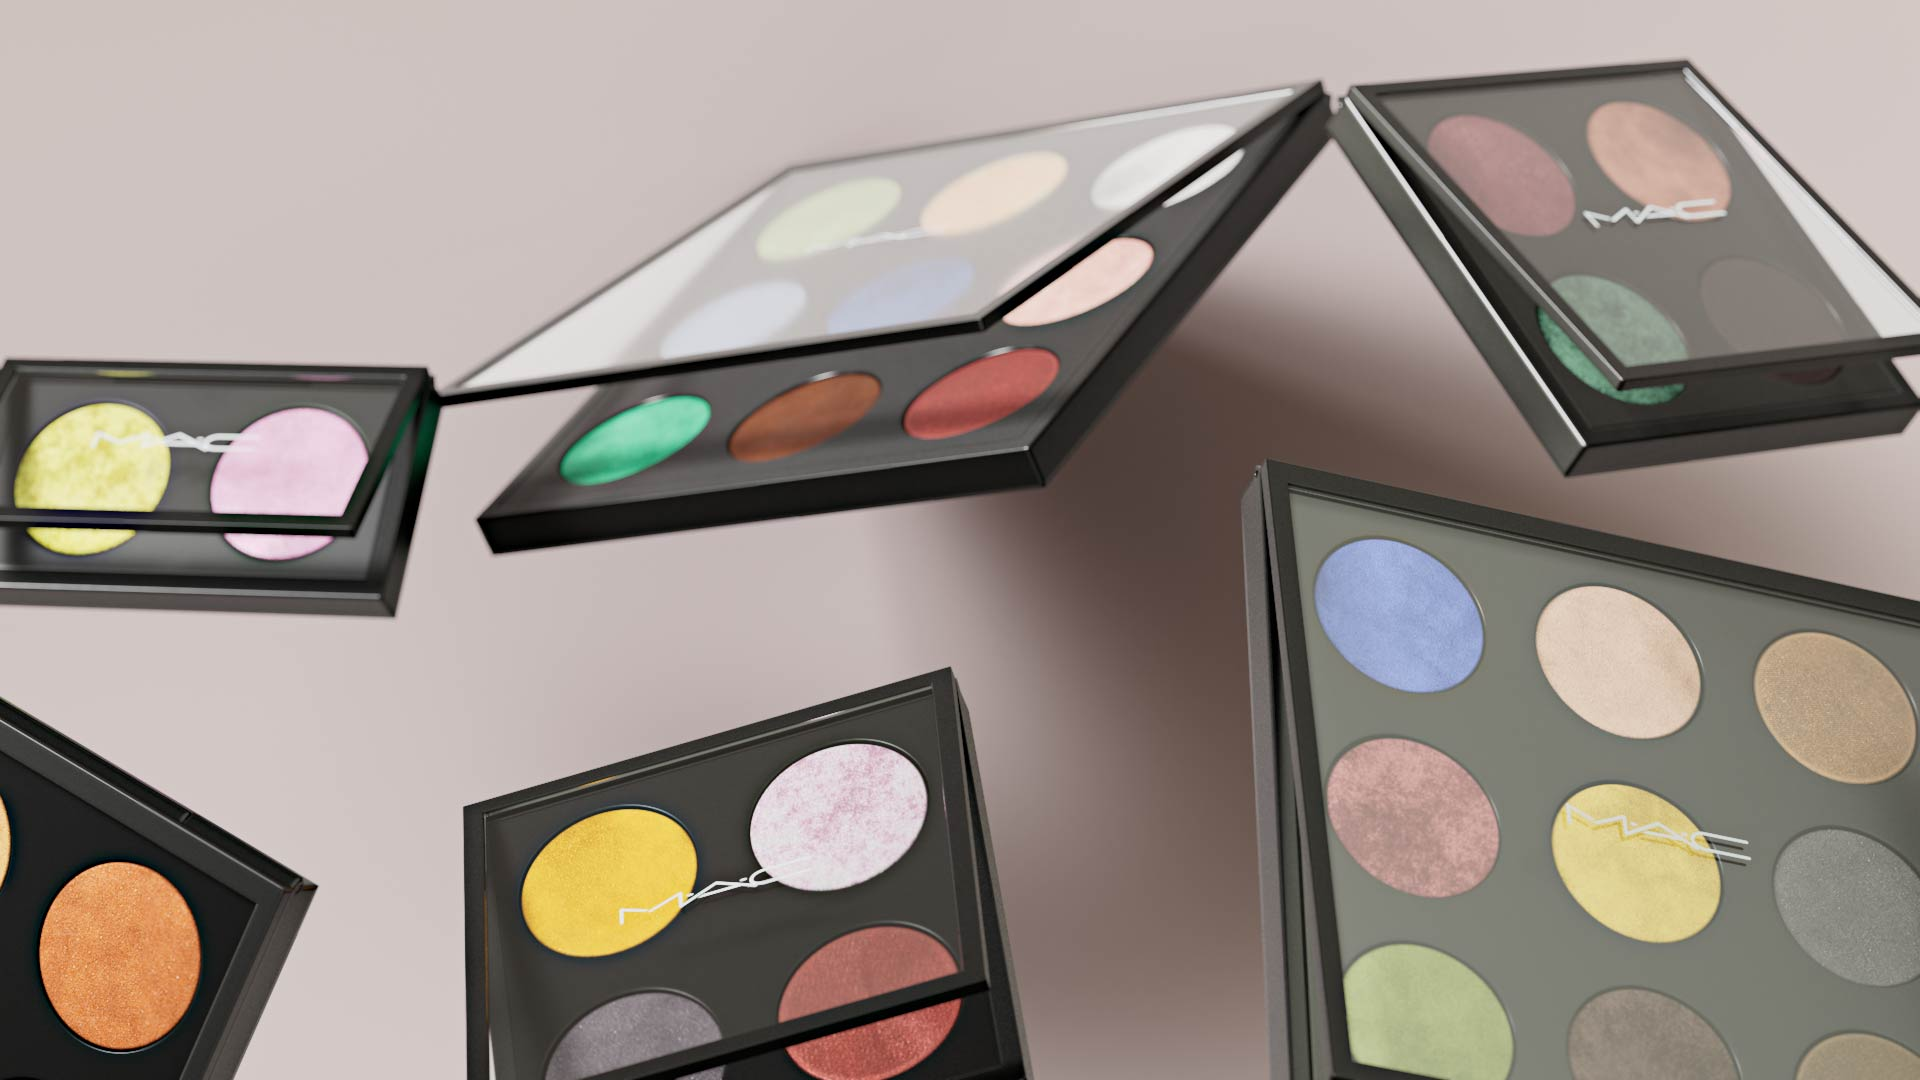 Levitating MAC palette cosmetic producs in 3D